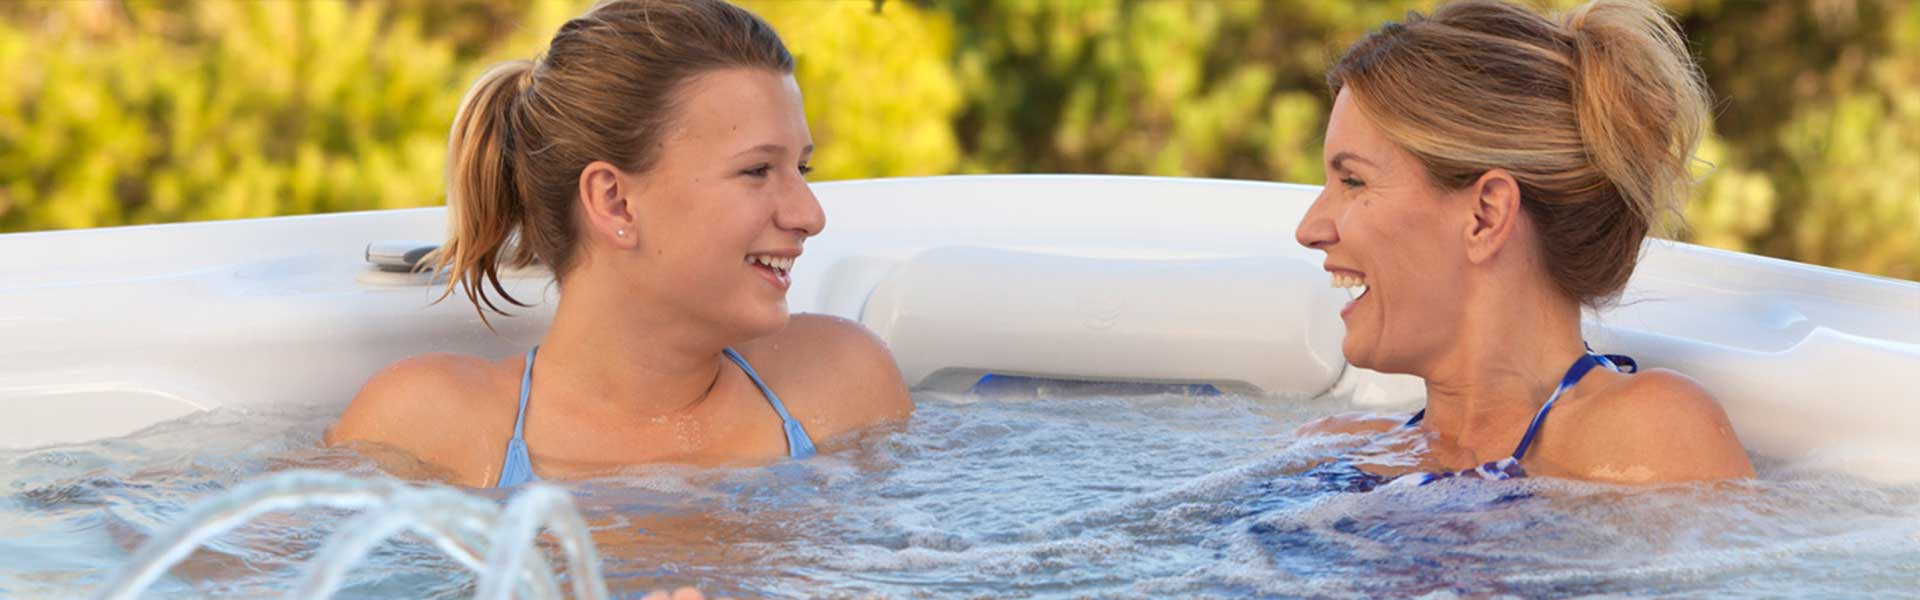 Ease Back Pain With Regular Portable Spa Use – Hot Tub Dealer St. Louis